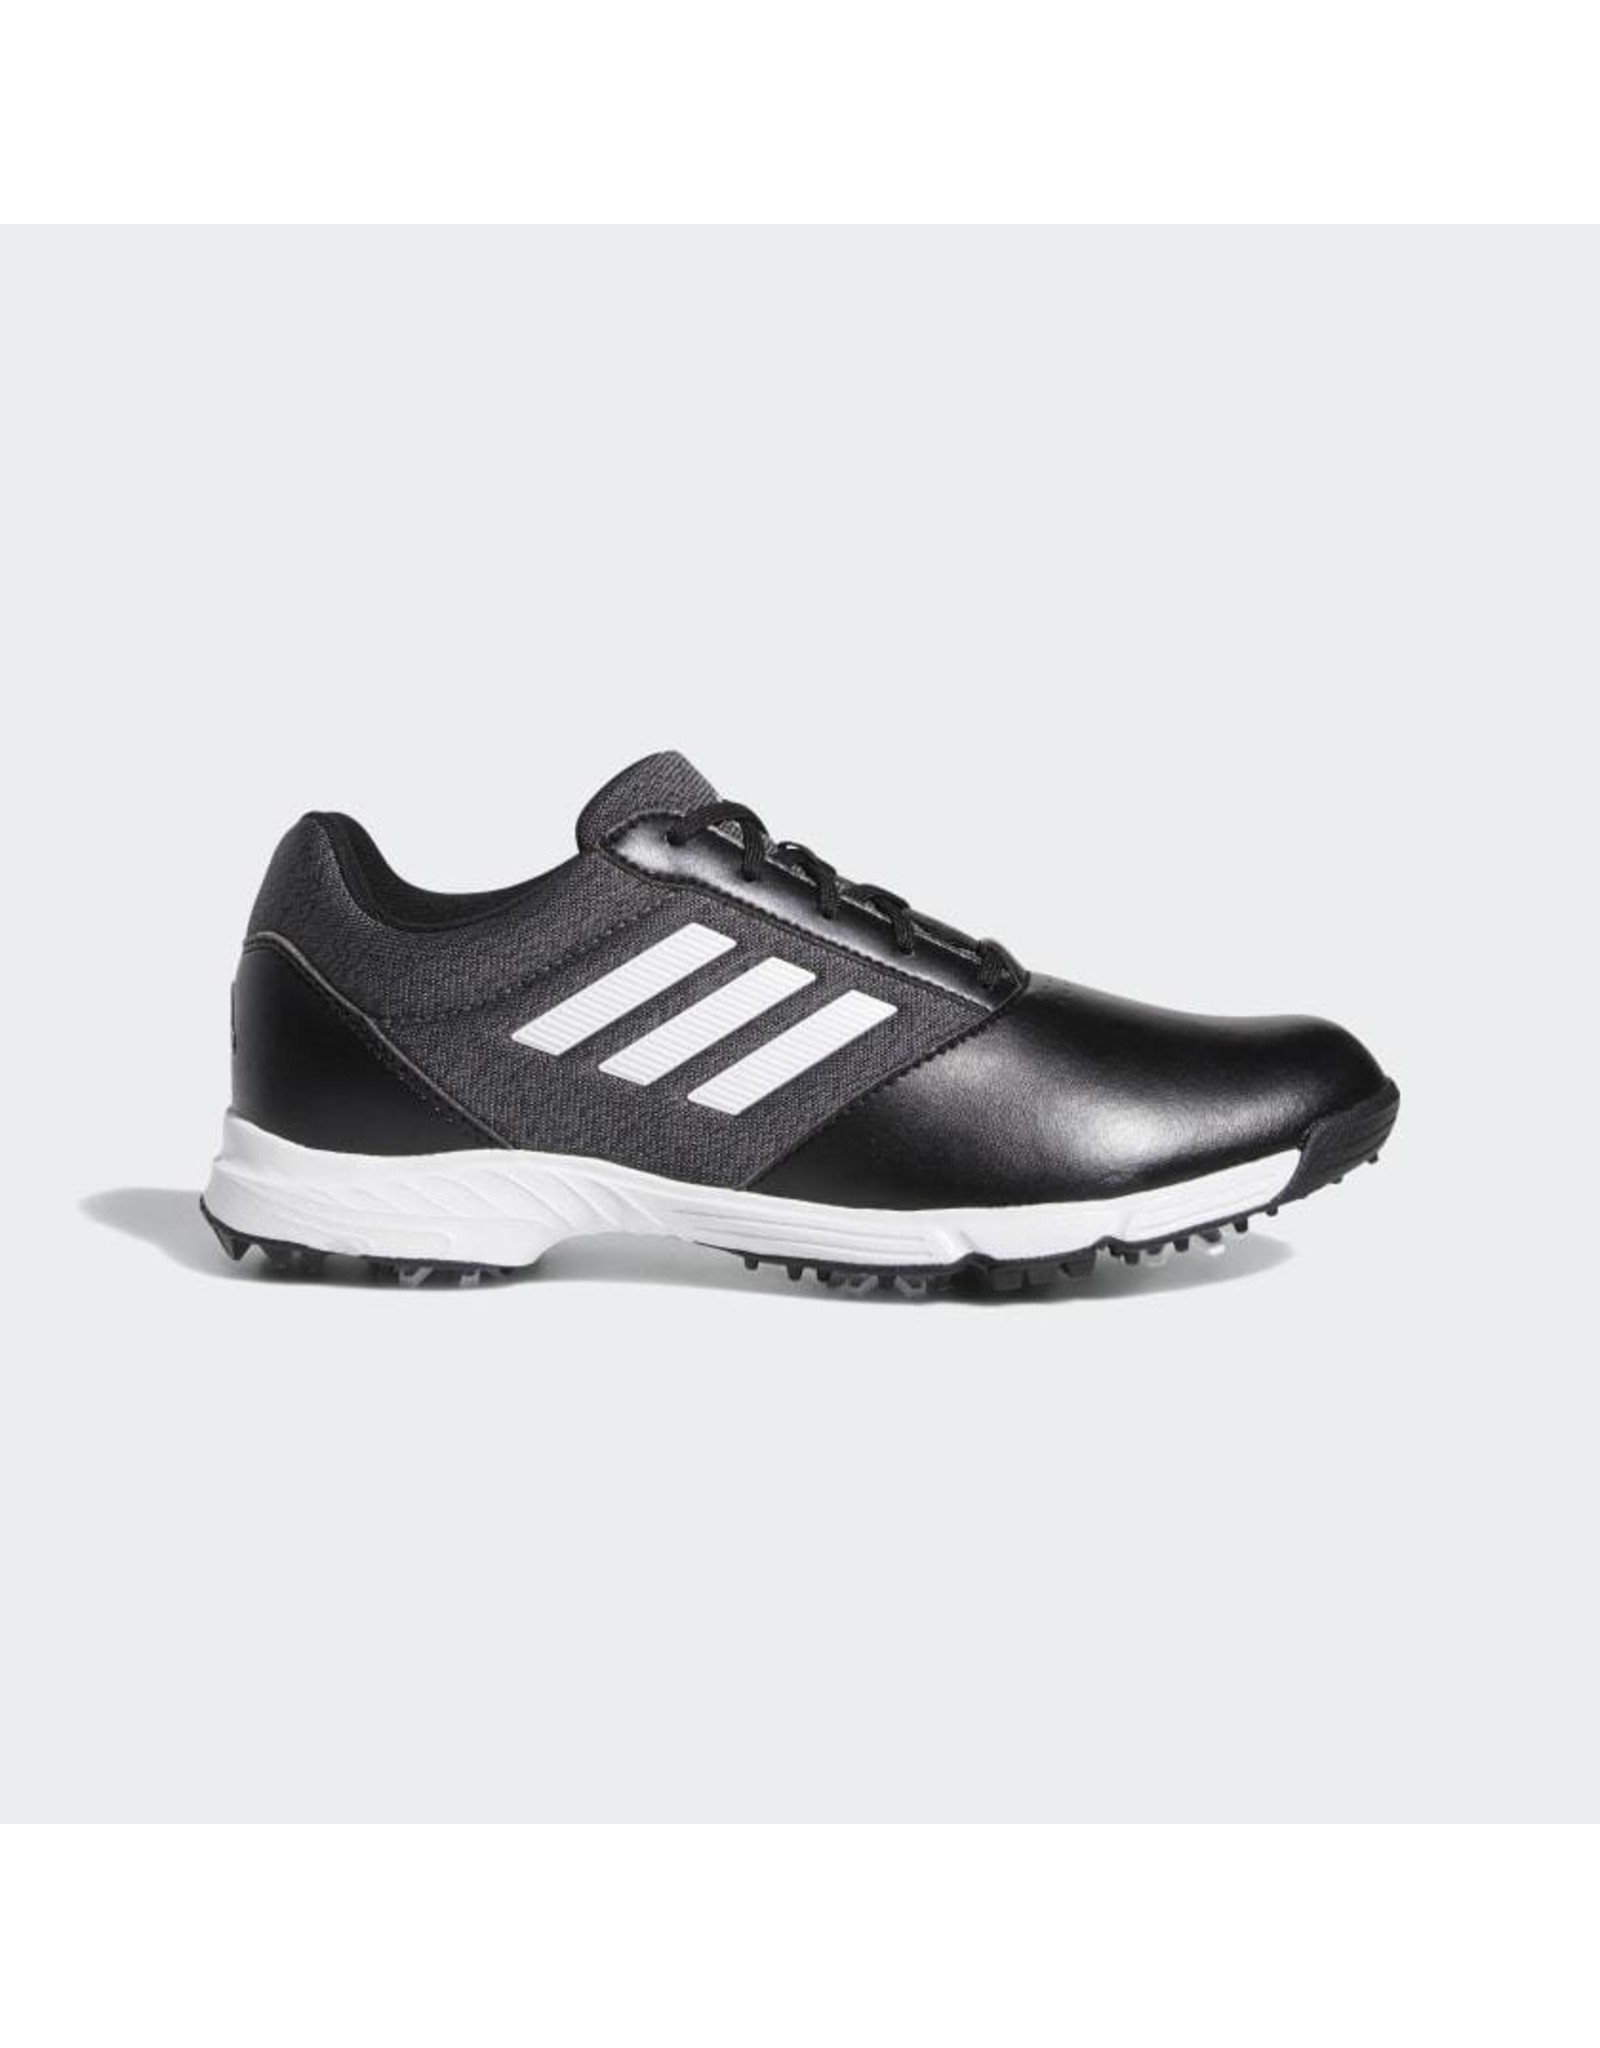 Adidas Adidas Women's Tech Response Black